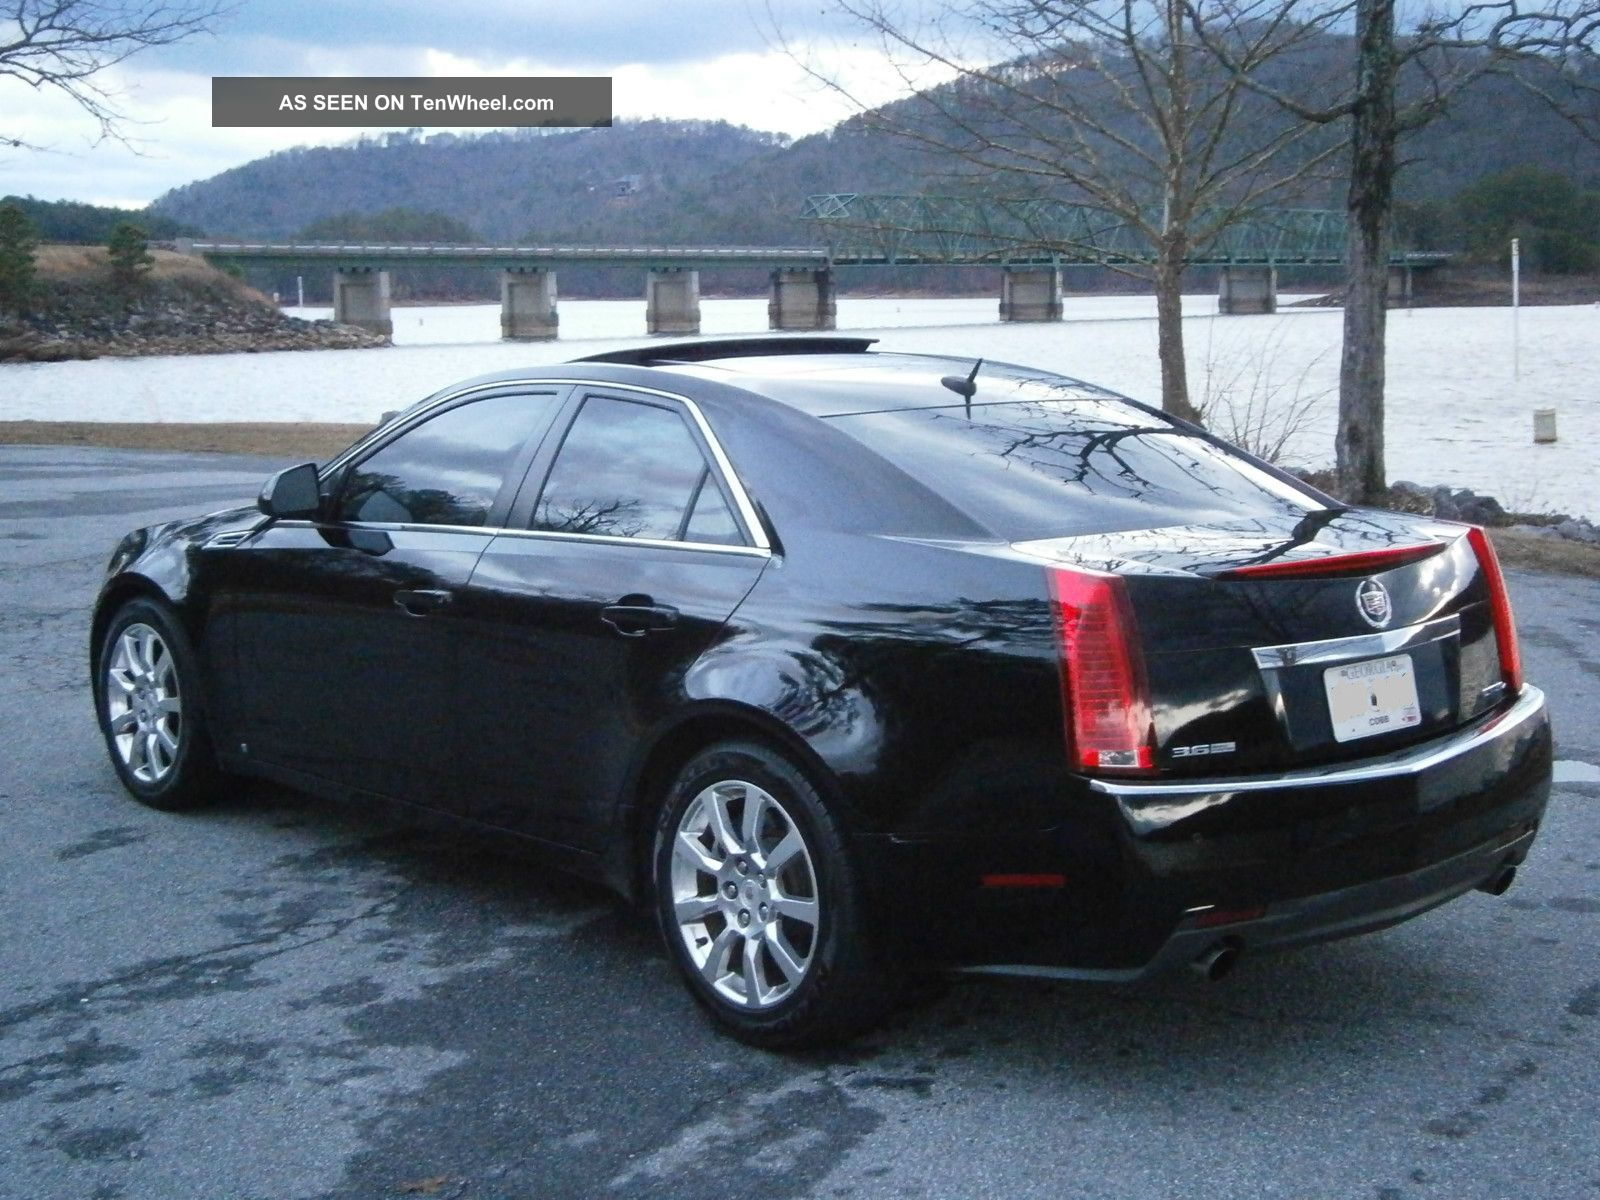 cadillac cts 3 6 2008 technical specifications interior and exterior photo. Black Bedroom Furniture Sets. Home Design Ideas